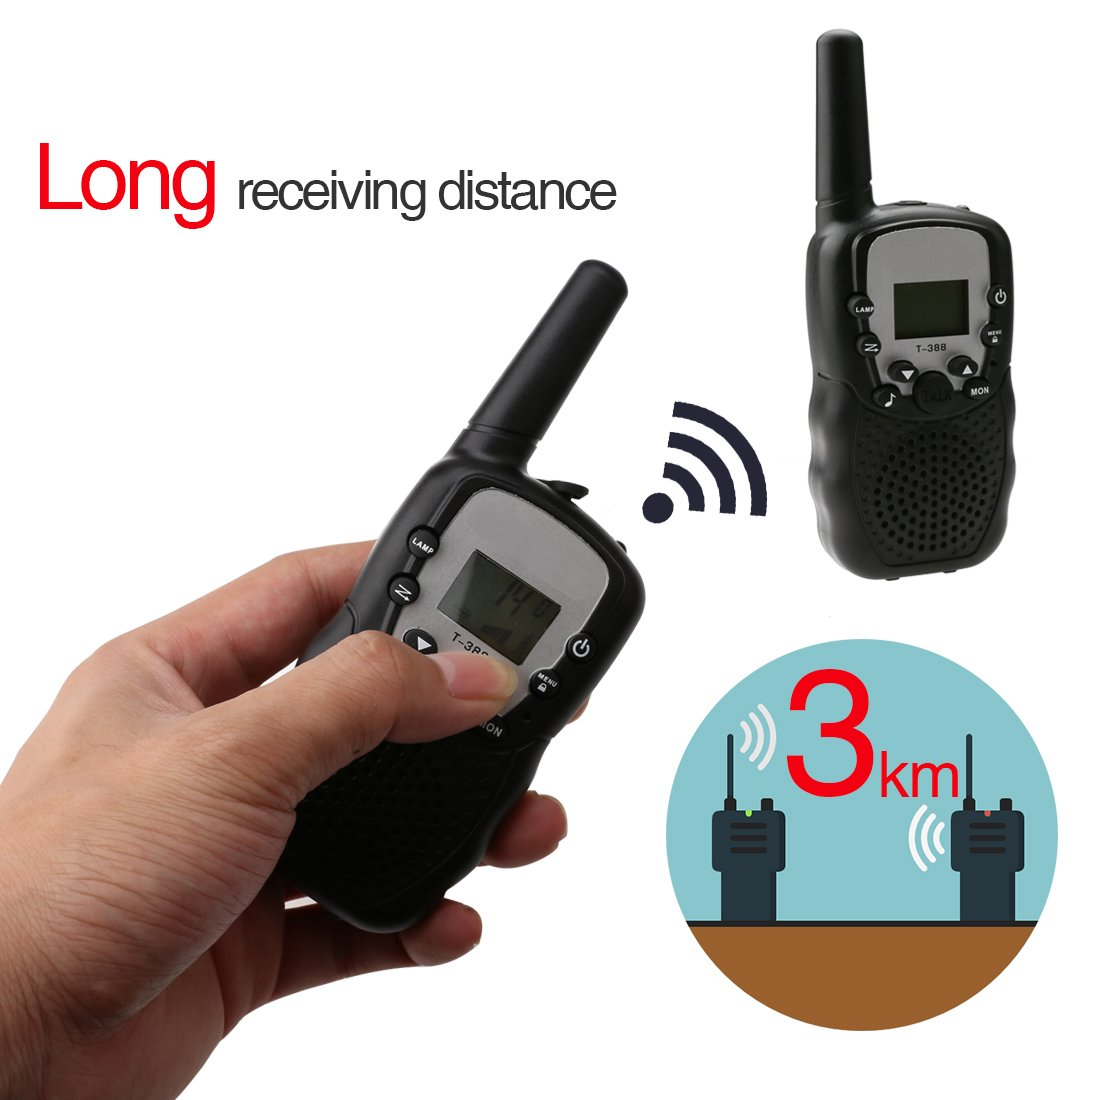 A-SZCXTOP 2 Piece Walkie Talkie for Kids Adult - 22 Channel/Take About Radio long DistanceInterphone for Outdoor Camping Travel